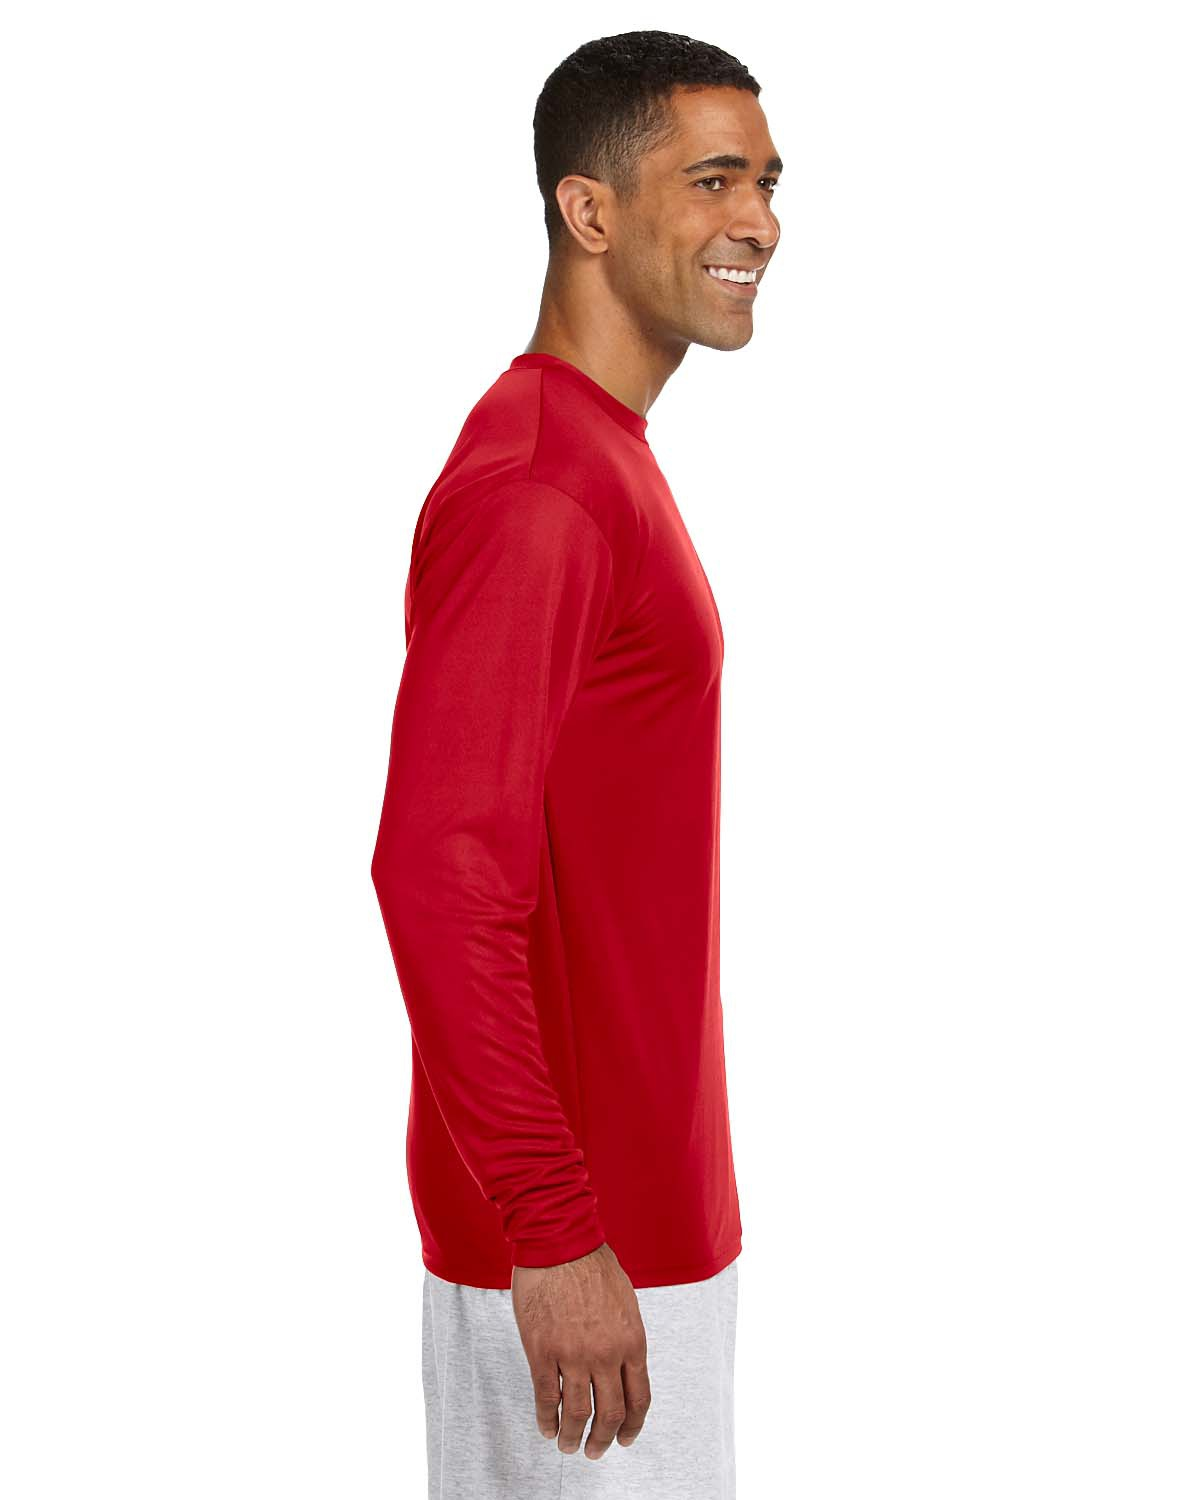 'A4 N3165 Men's Cooling Performance Long Sleeve T-Shirt'